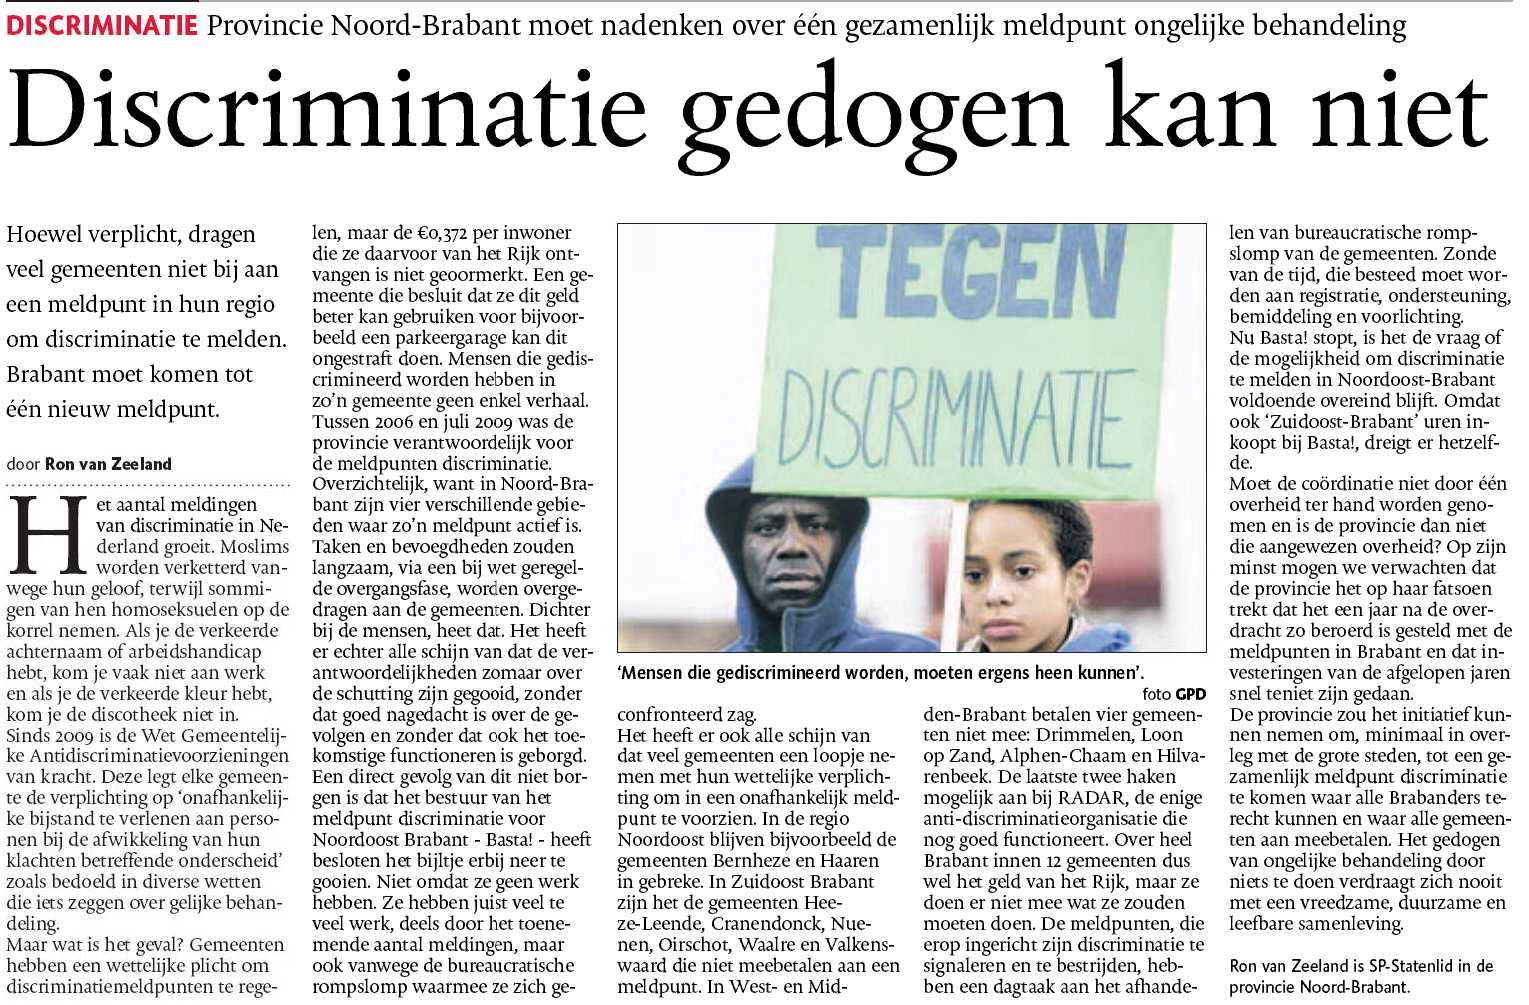 RADAR - discriminatie - LHBT